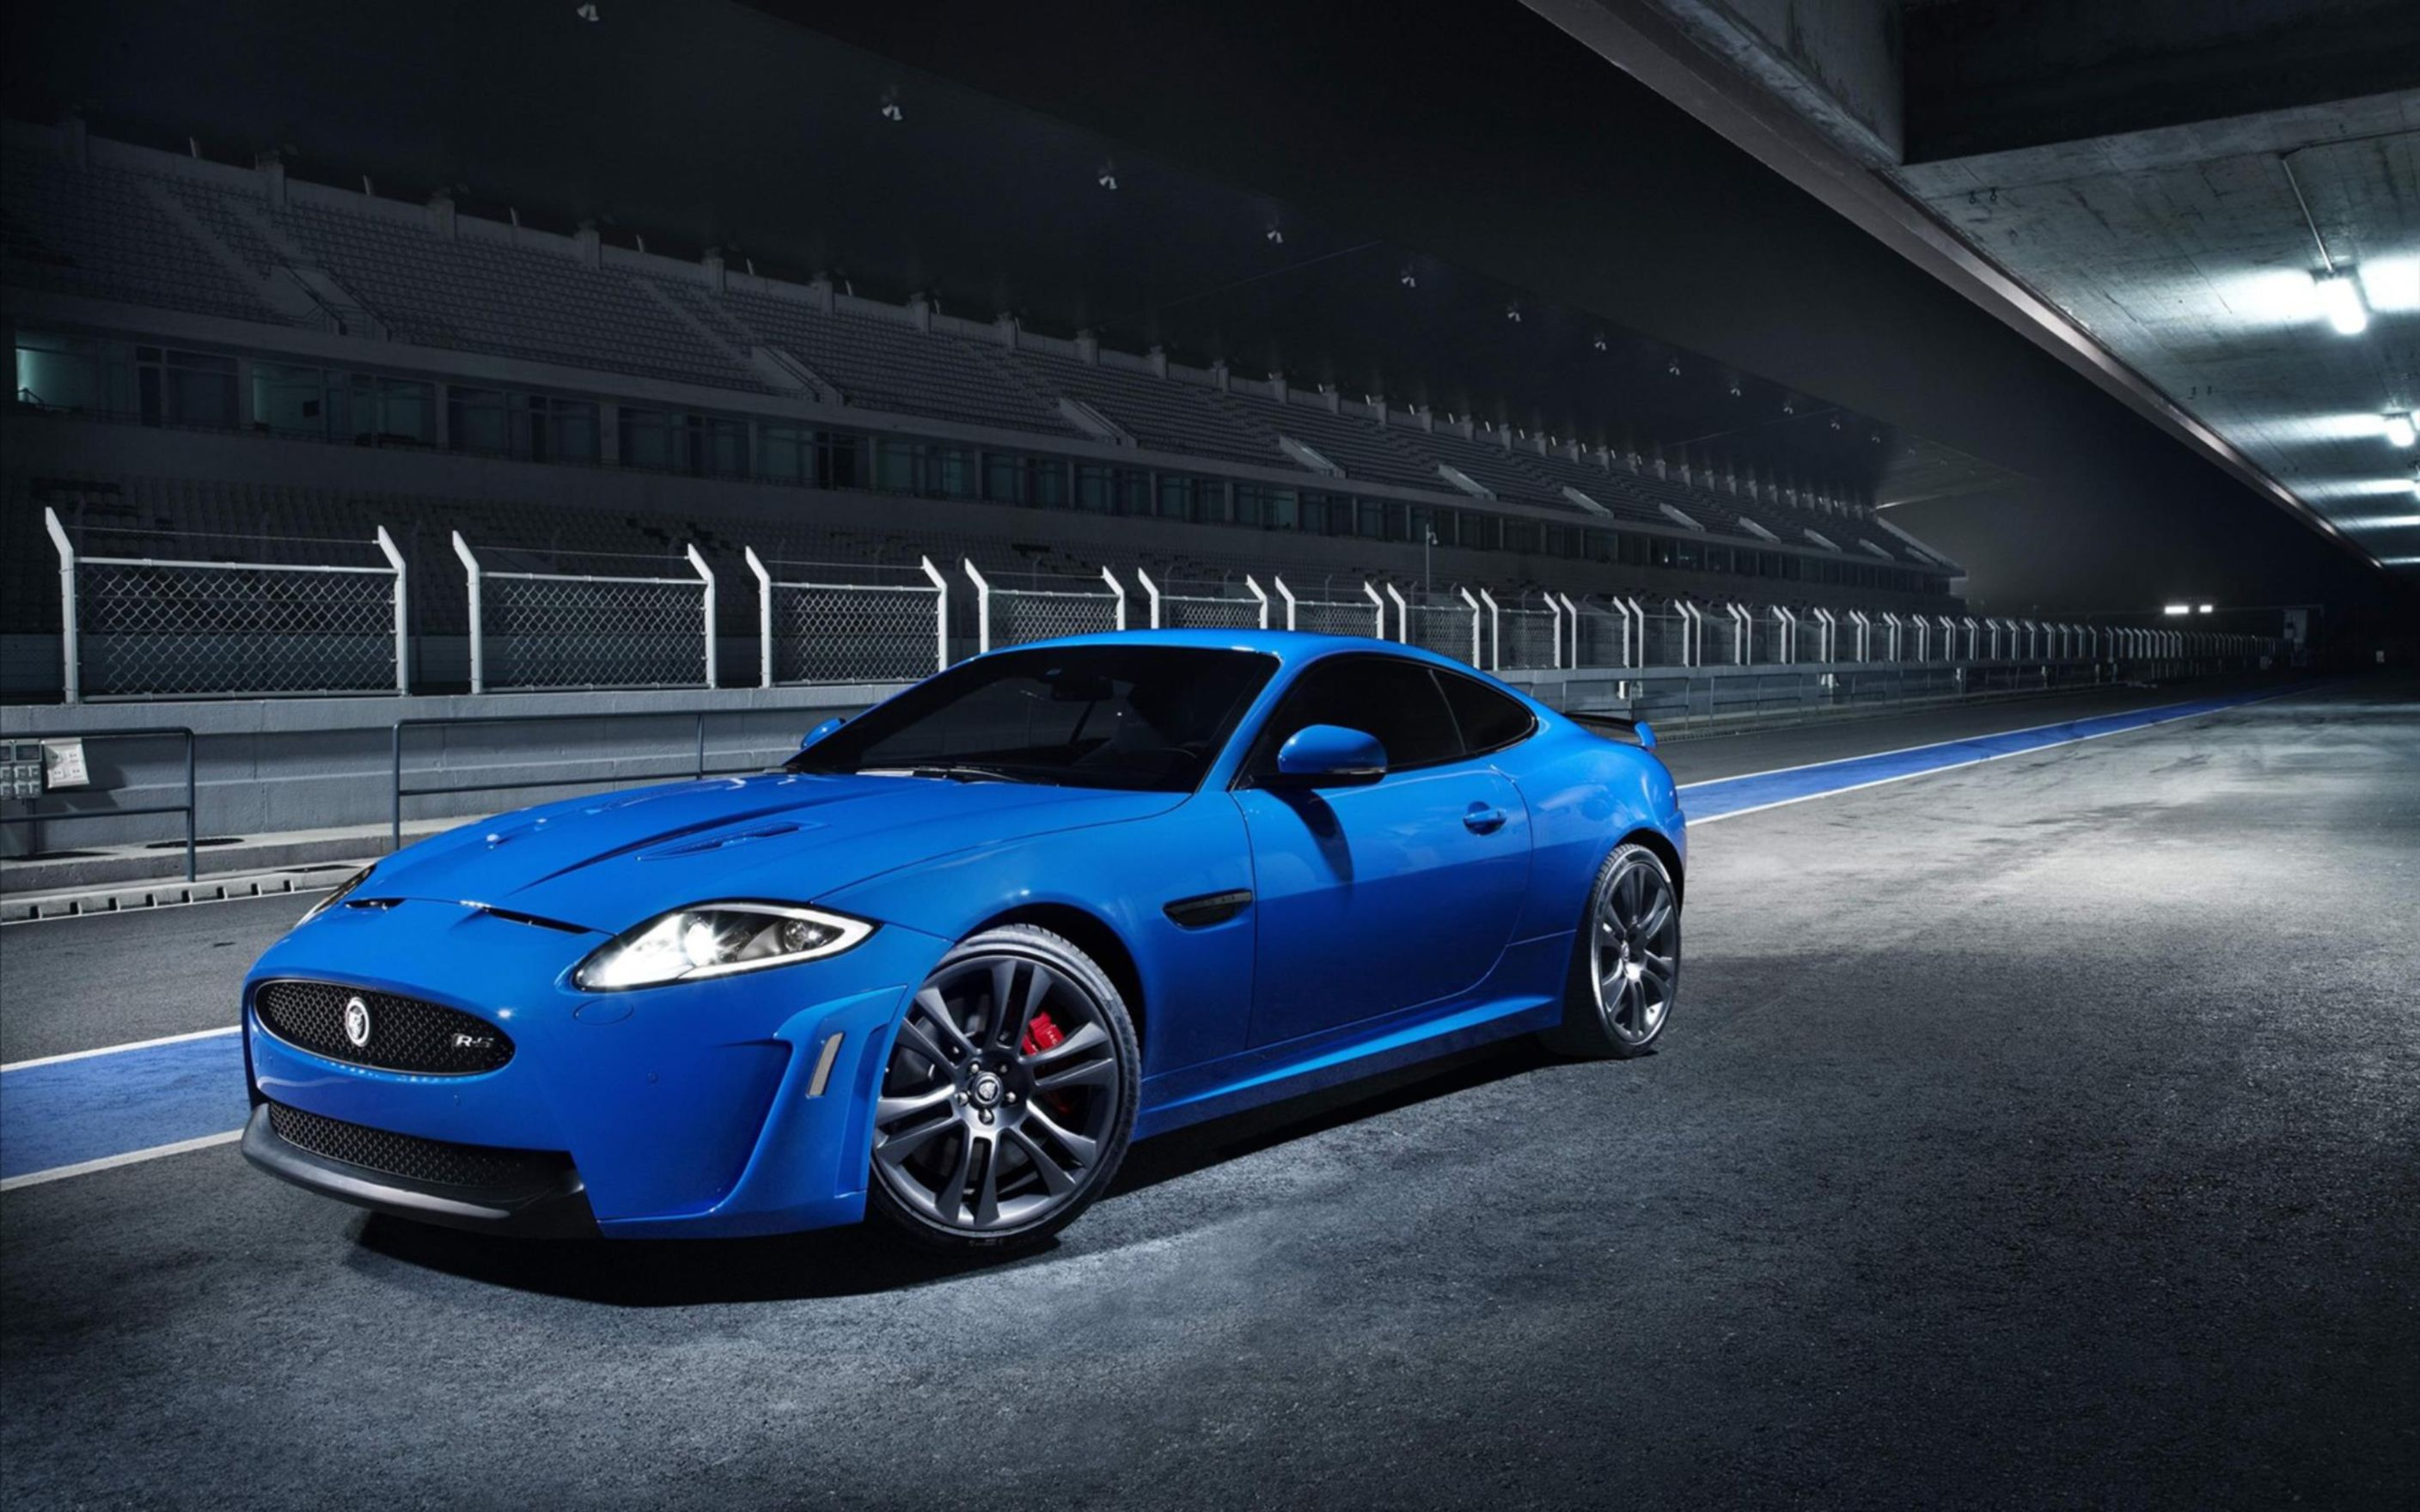 Download free HD Jaguar XKR S Wallpaper, image